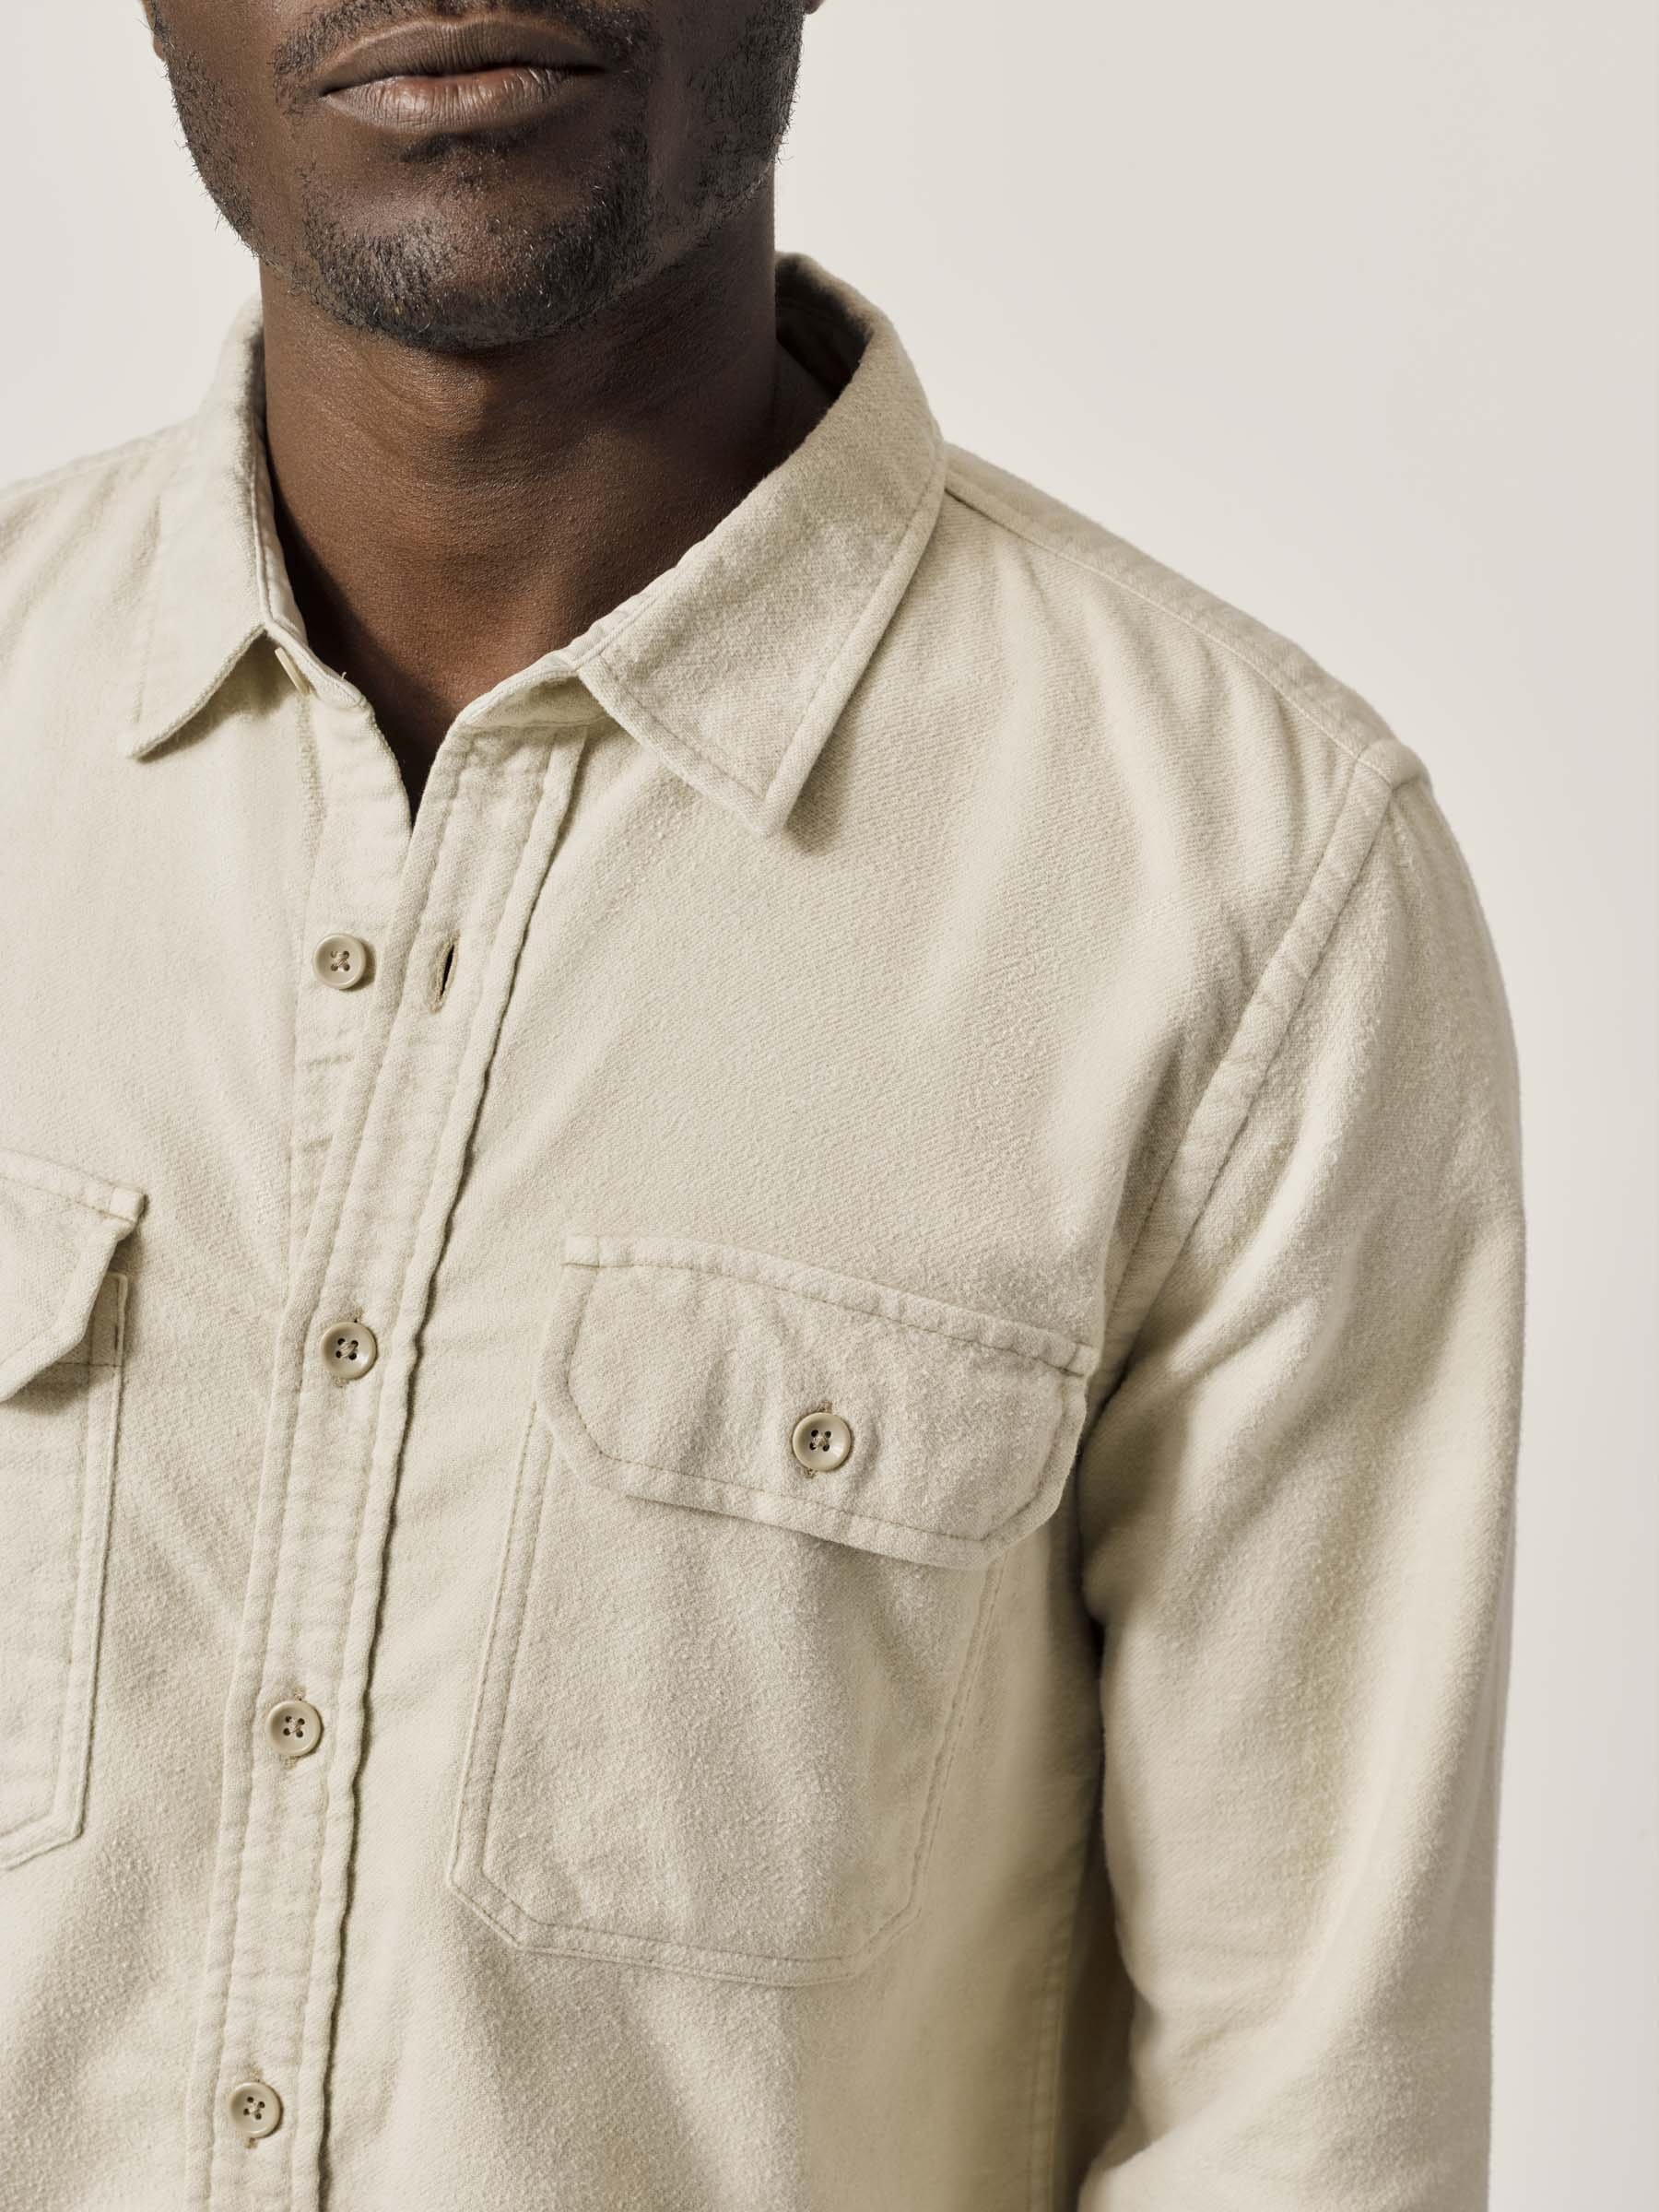 Buck Mason - Stone Brushed Flannel Two Pocket Shirt